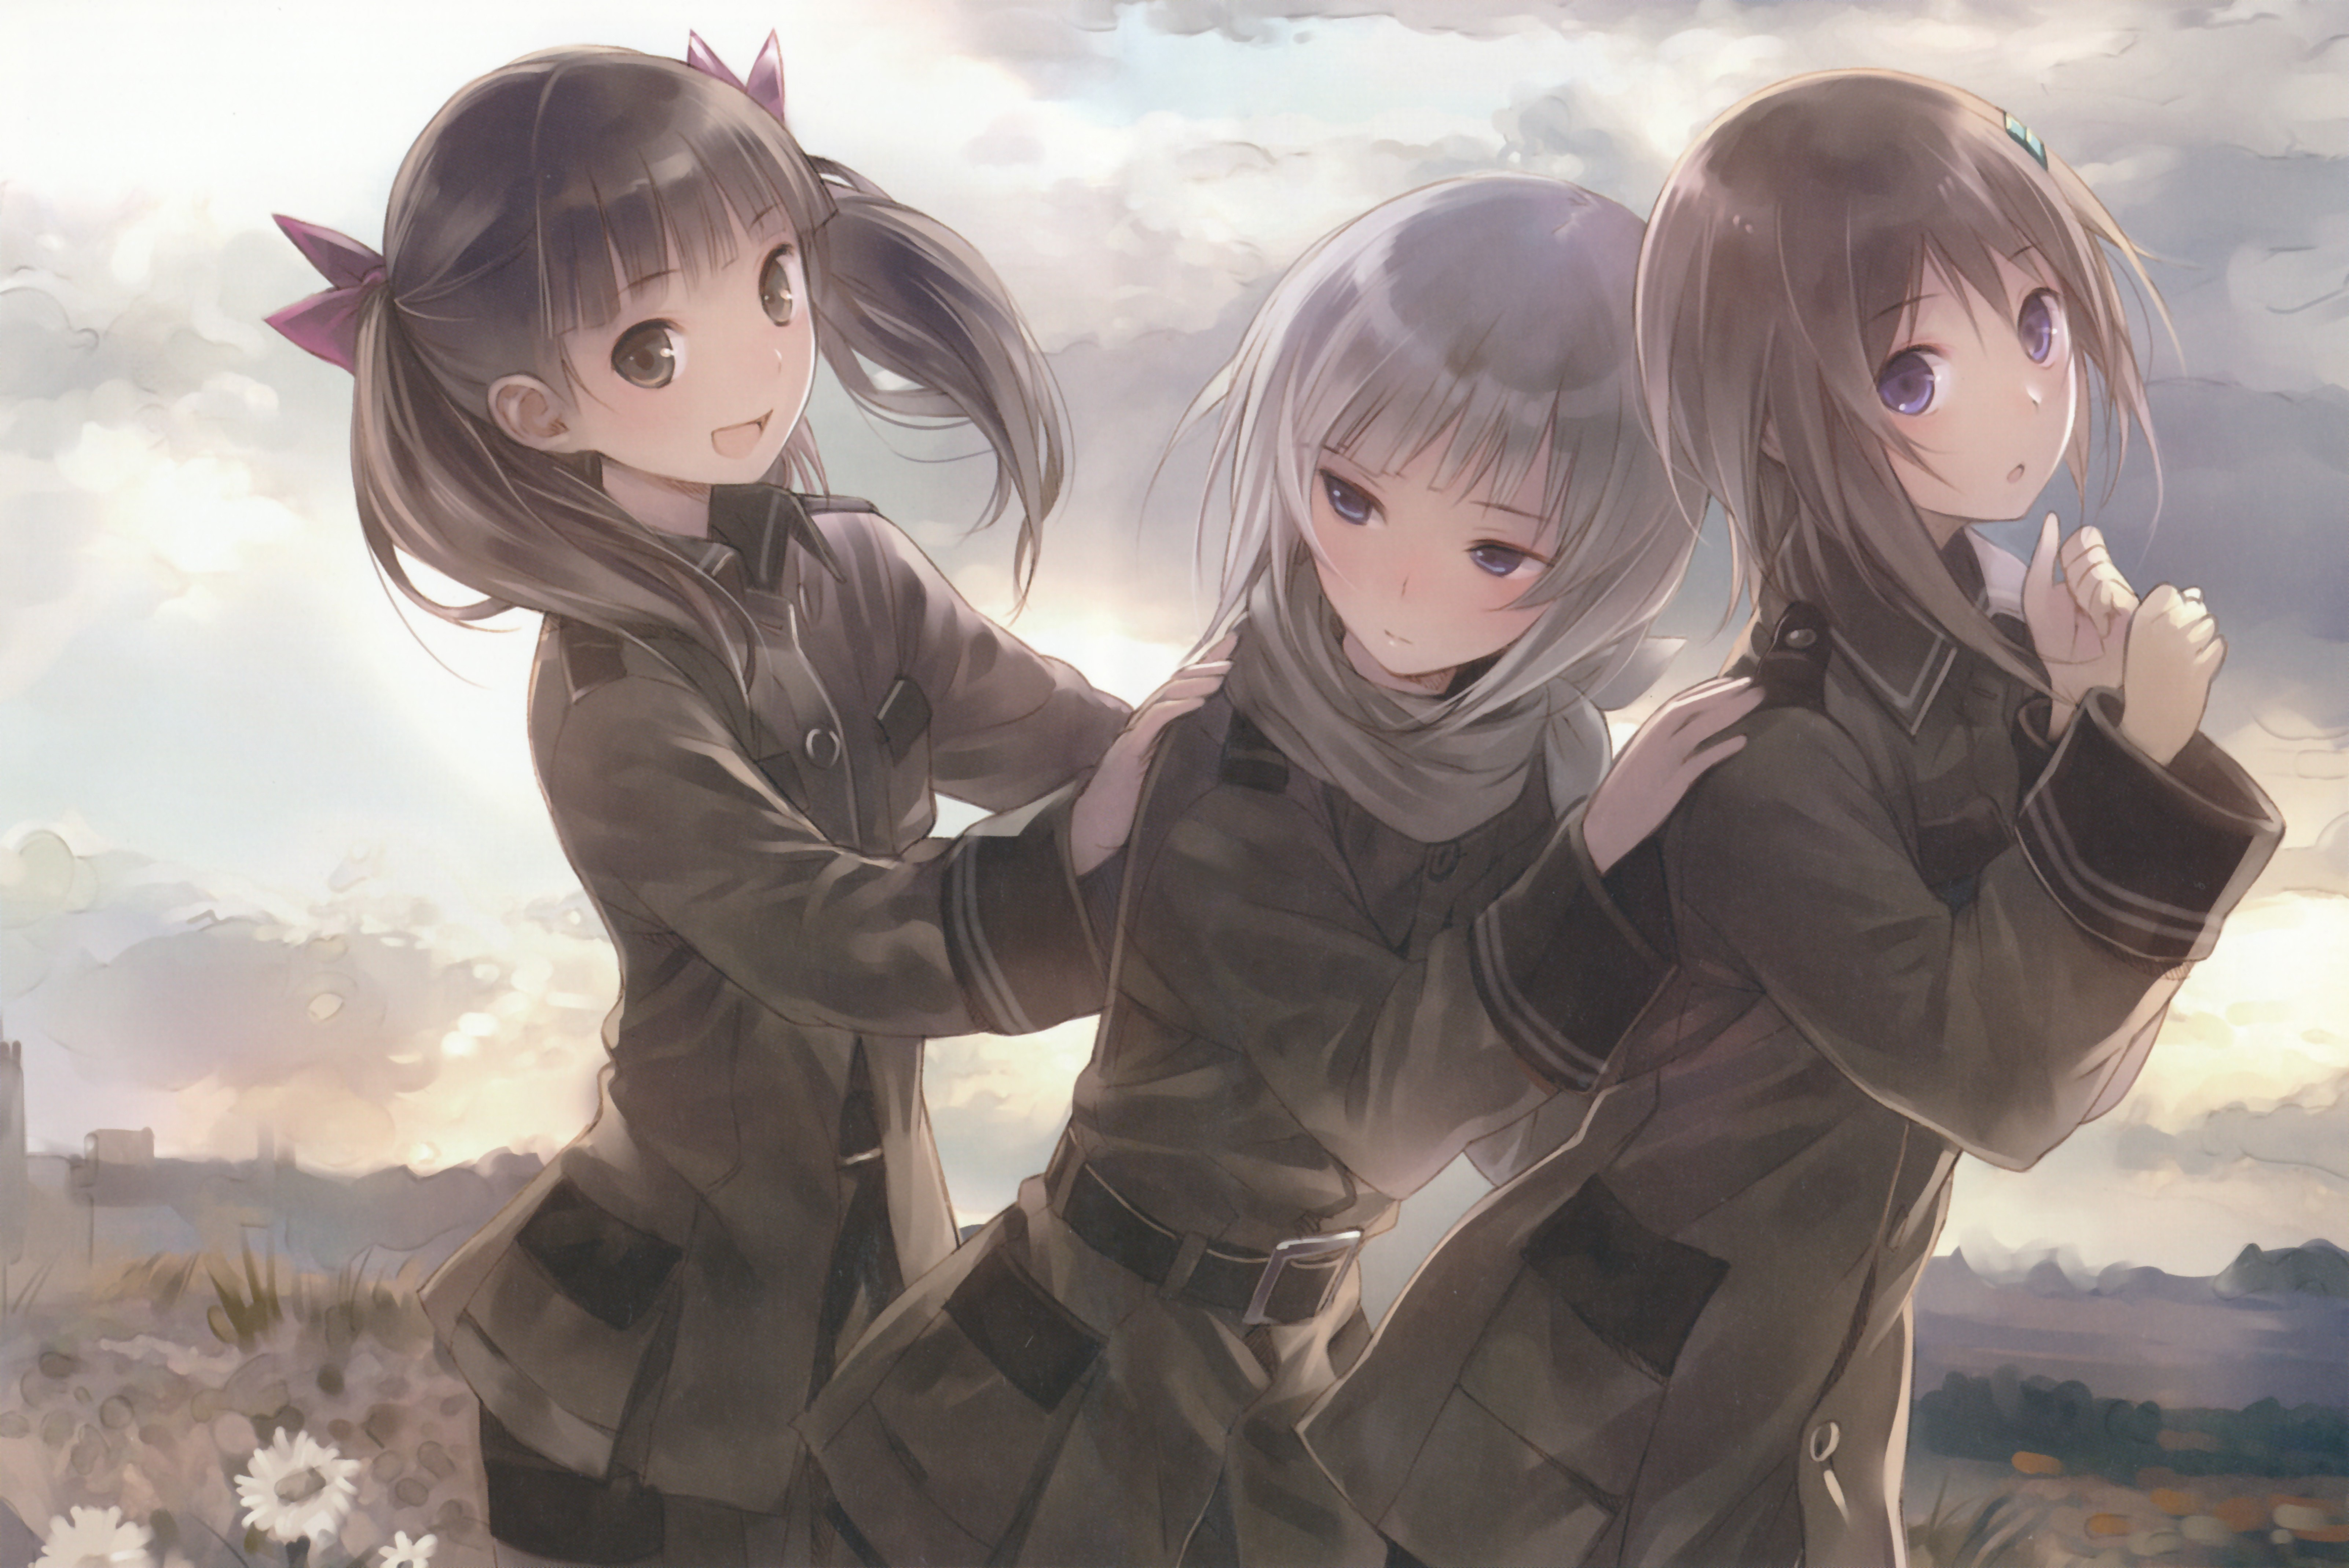 brunettes clouds uniforms Army HD Wallpaper